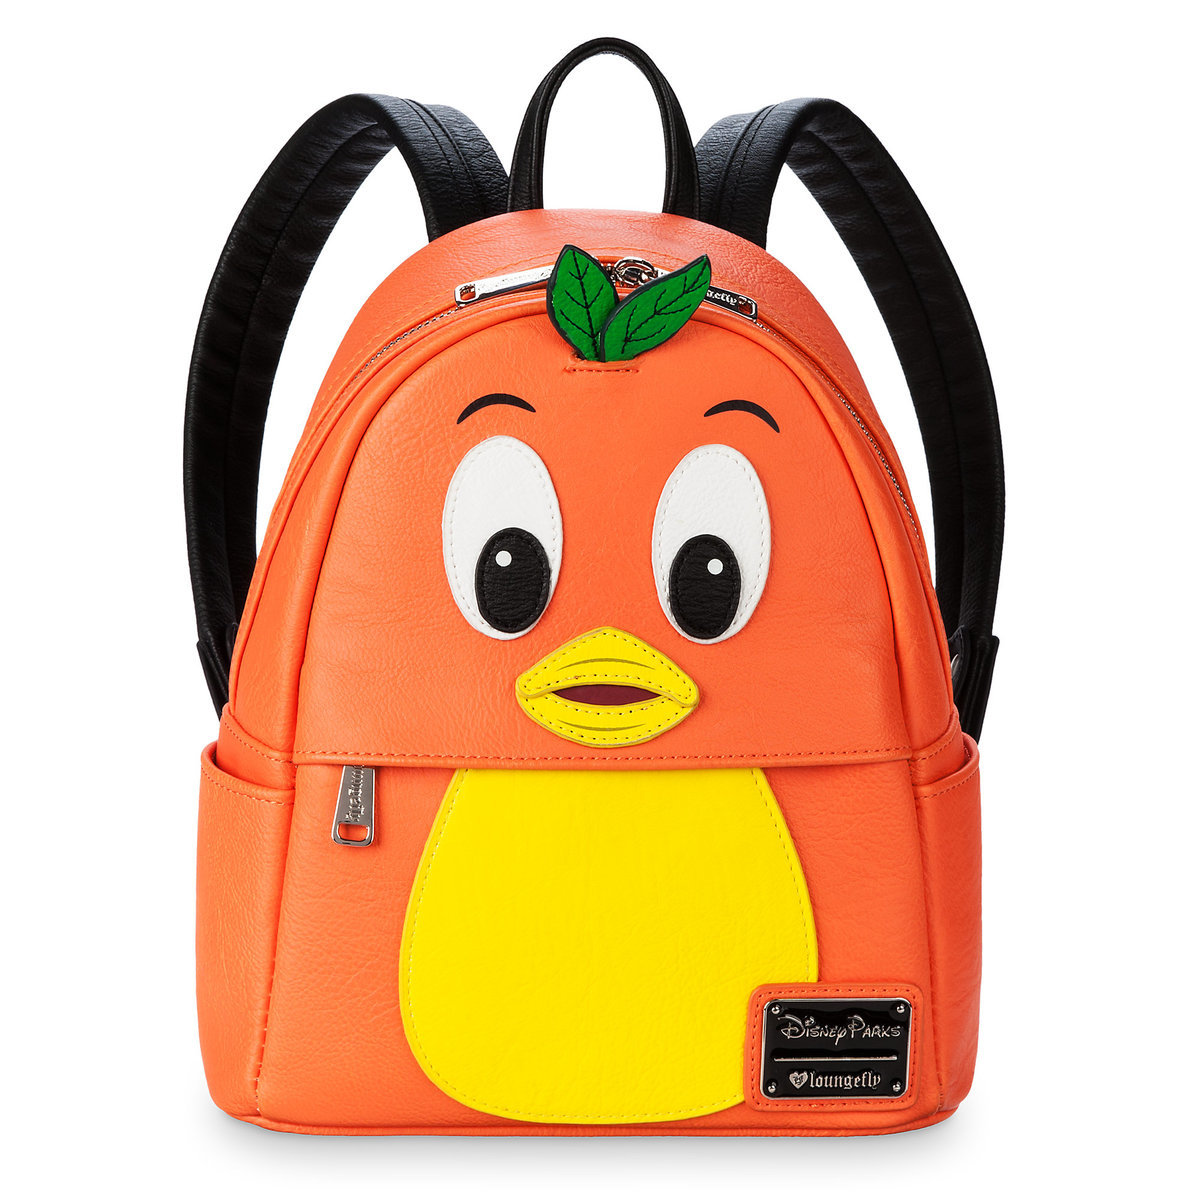 71b0d2ab163 Product Image of Orange Bird Mini Backpack by Loungefly   1